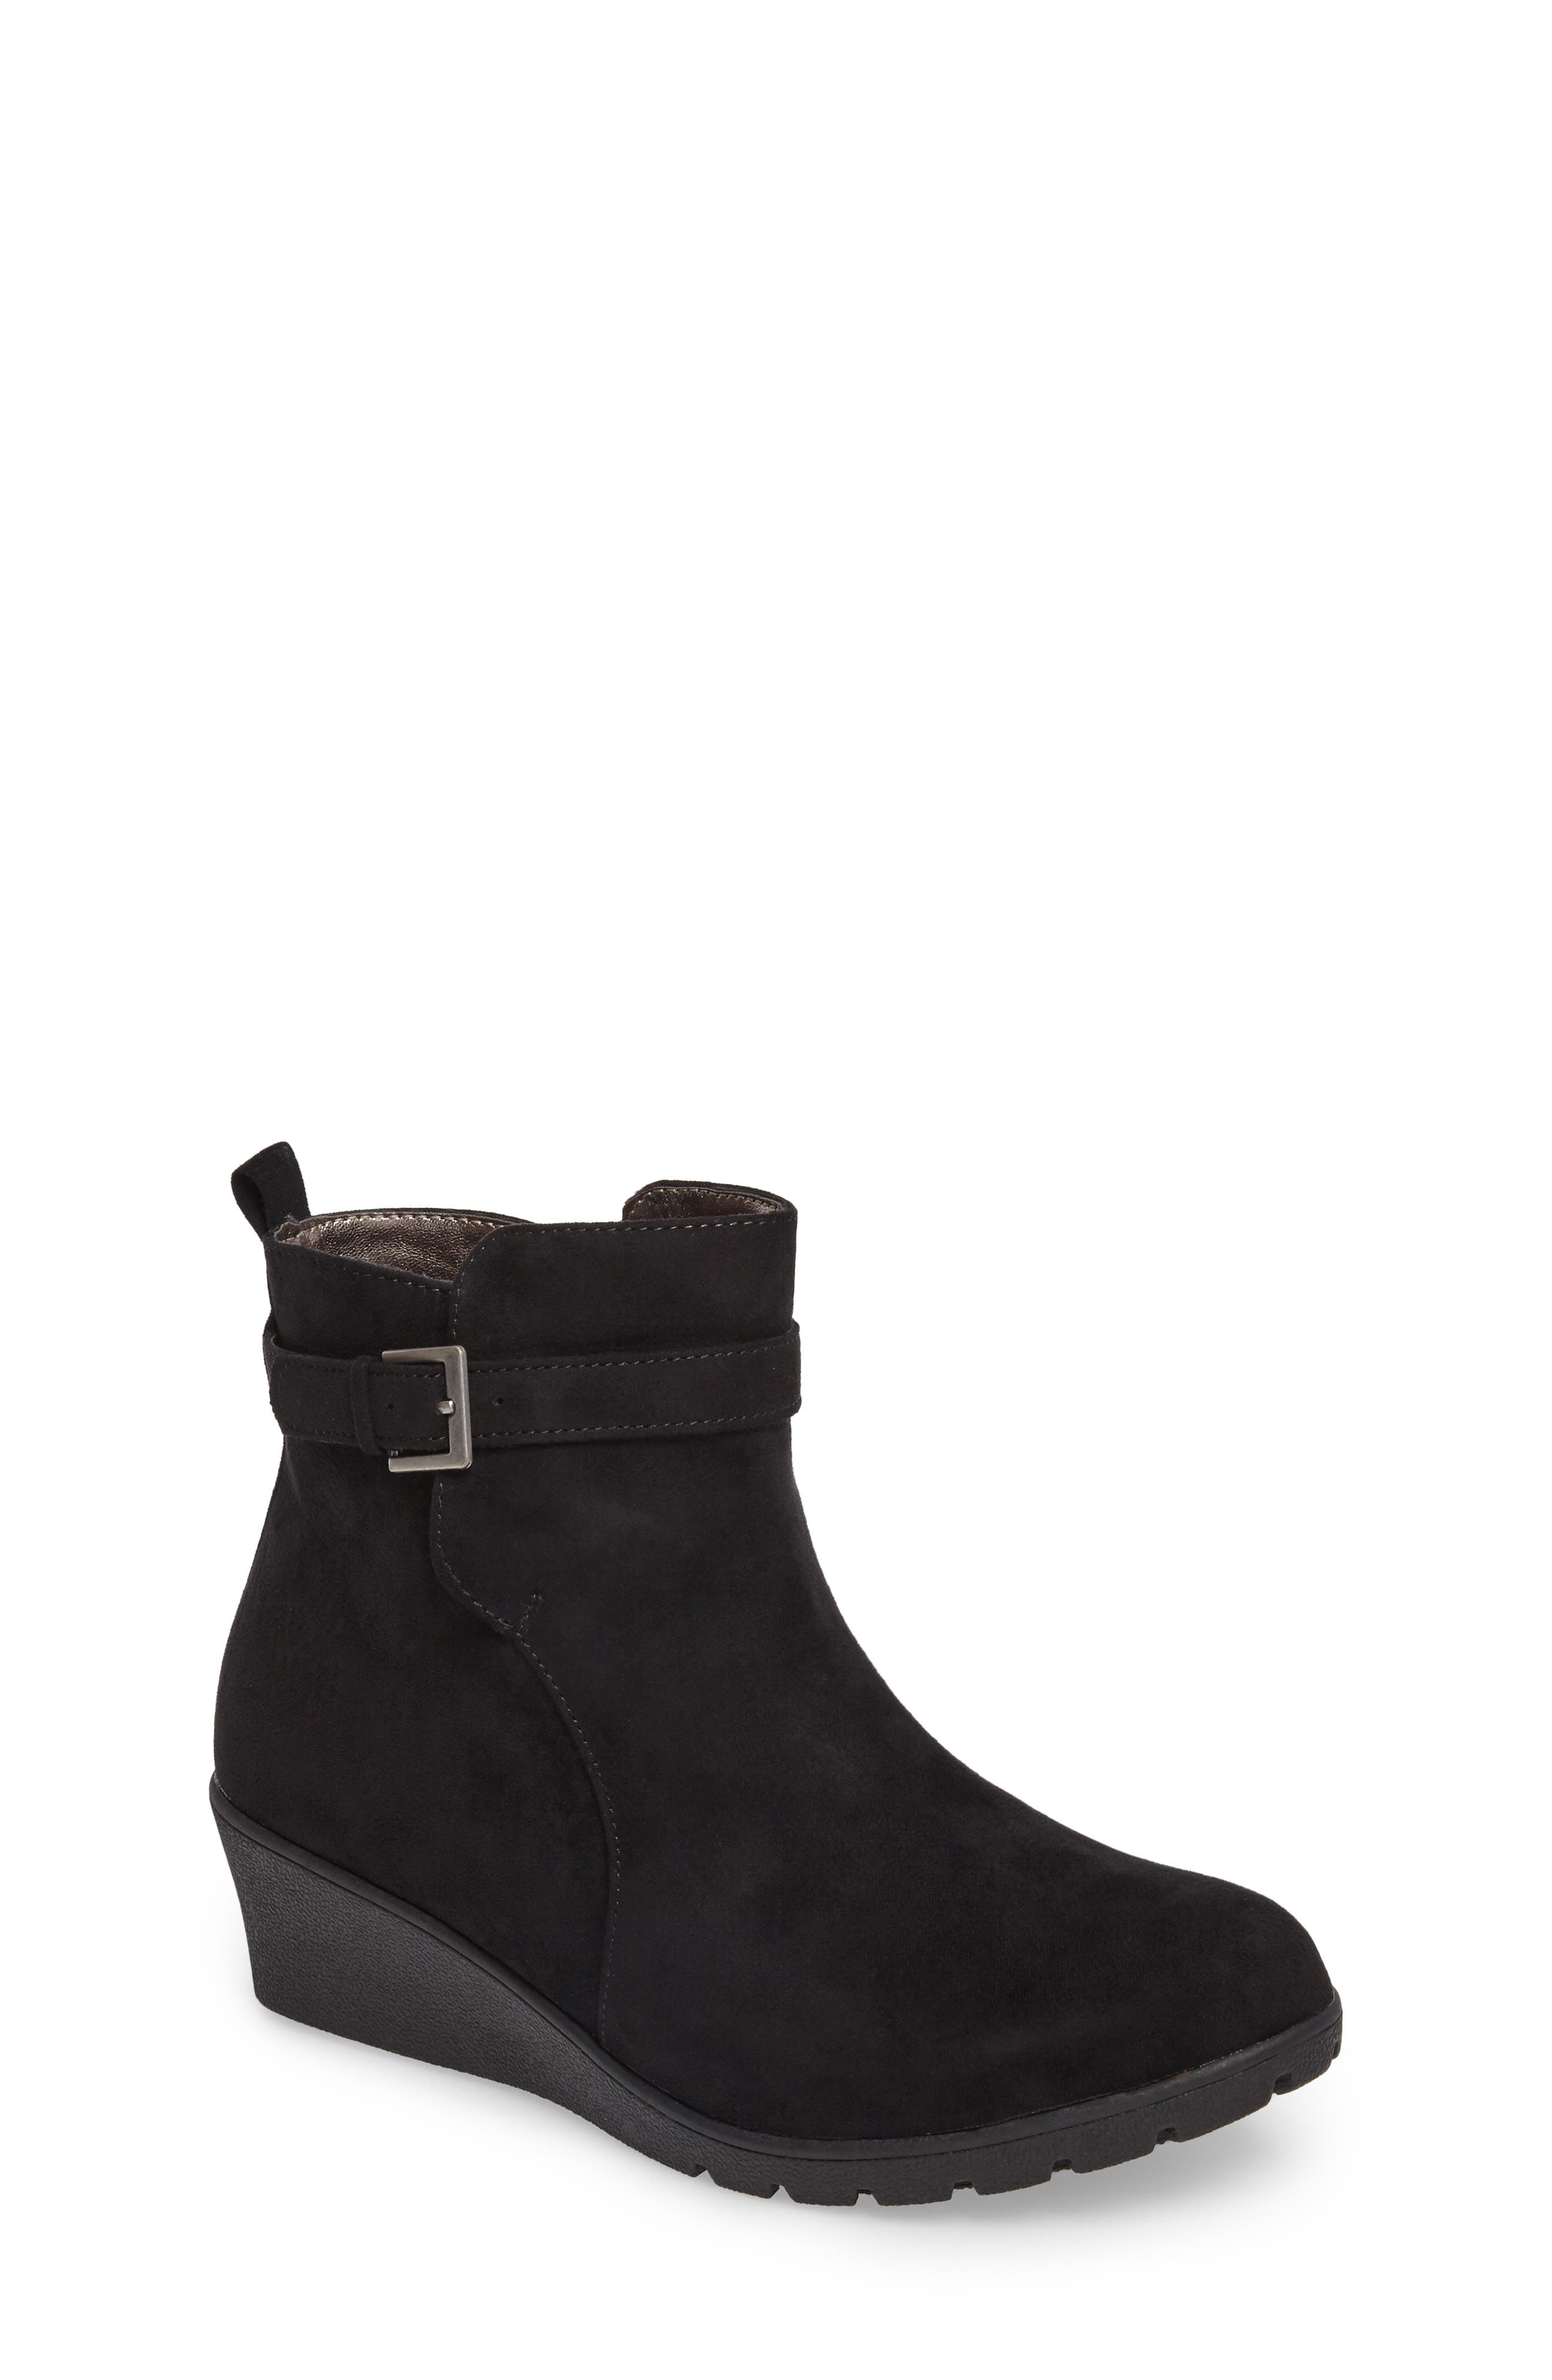 KENNETH COLE NEW YORK Reaction Kenneth Cole Ariel Wedge Bootie